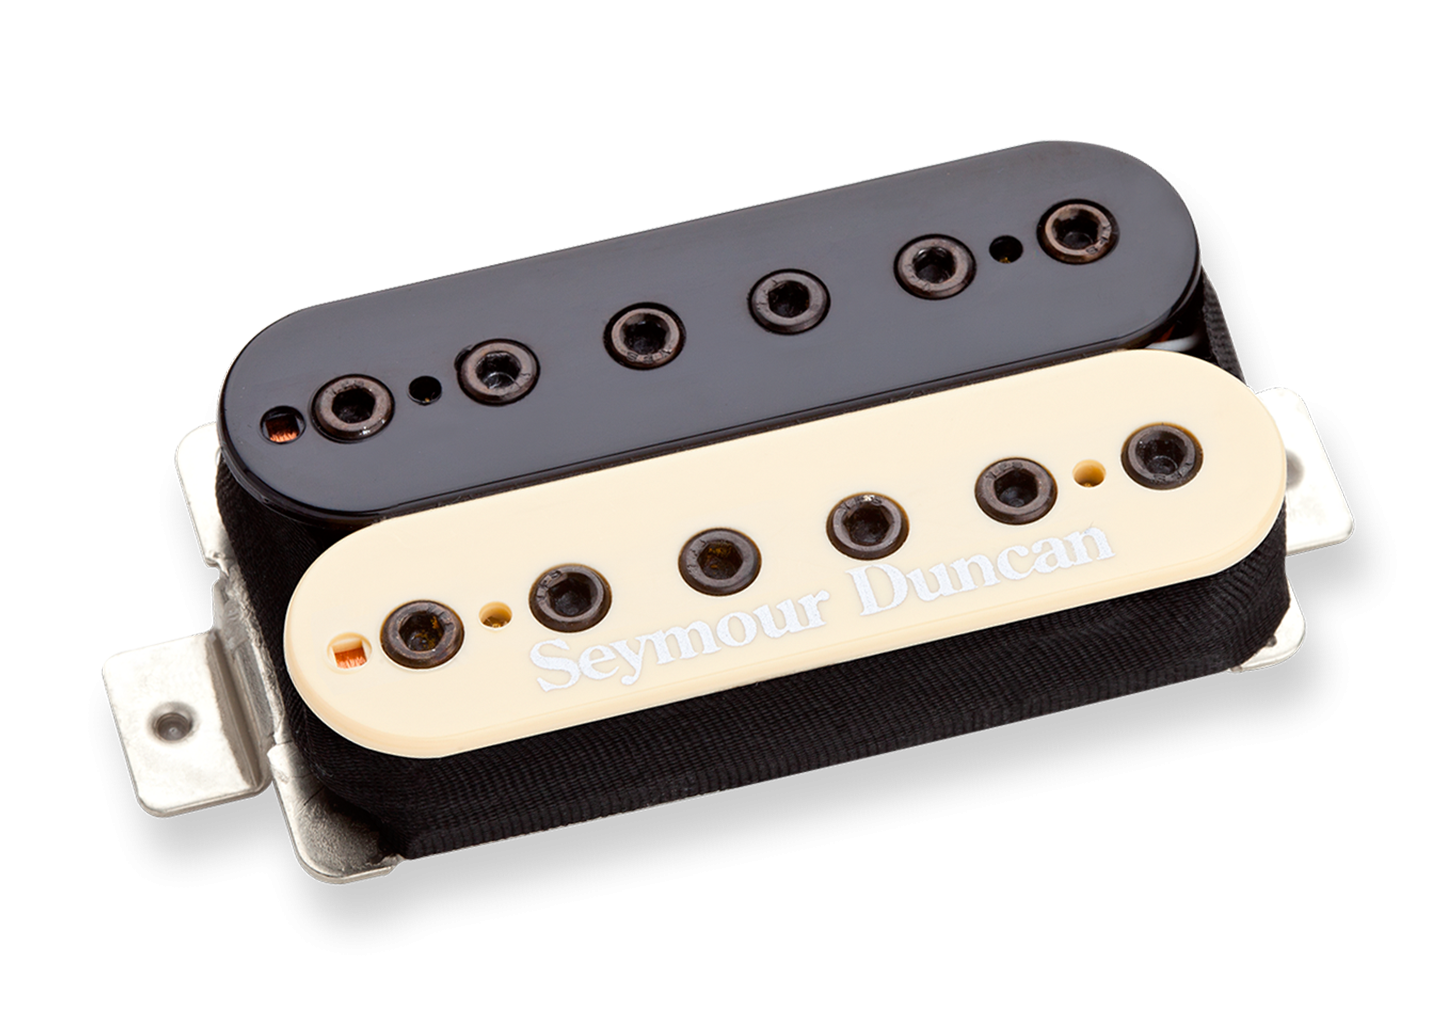 Seymour Duncan Full Shred Humbucker - SH-10B Bridge Zebra